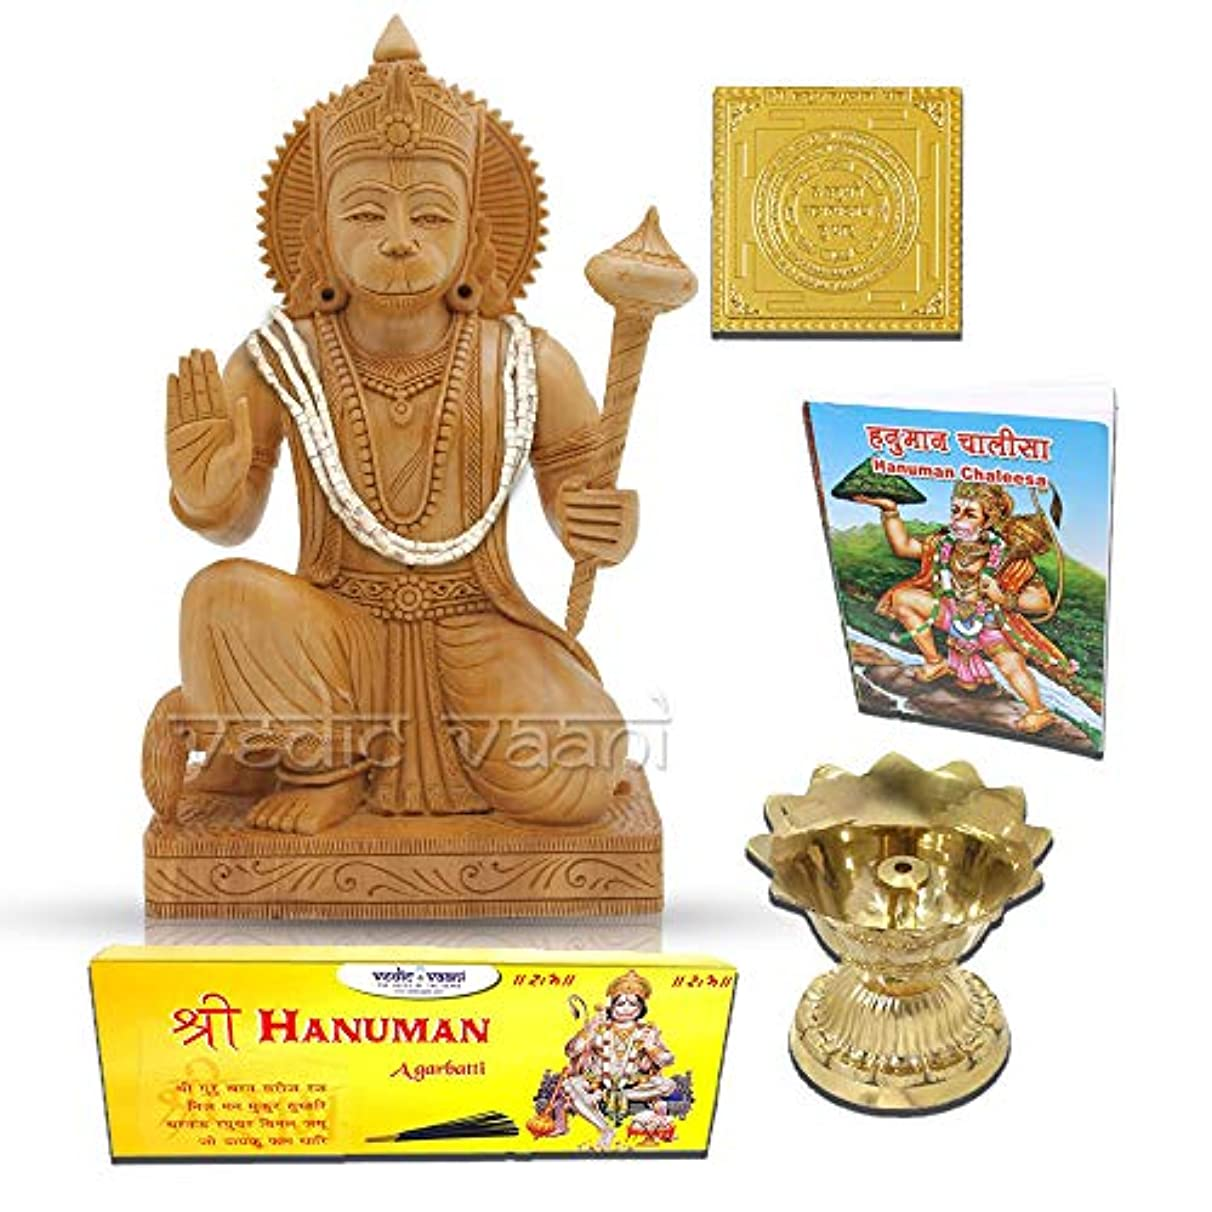 感嘆符隠す法律によりLord Hanuman木製Statue withヤントラ、Chalisa、Diya and Incense Sticks Vedic Vaani